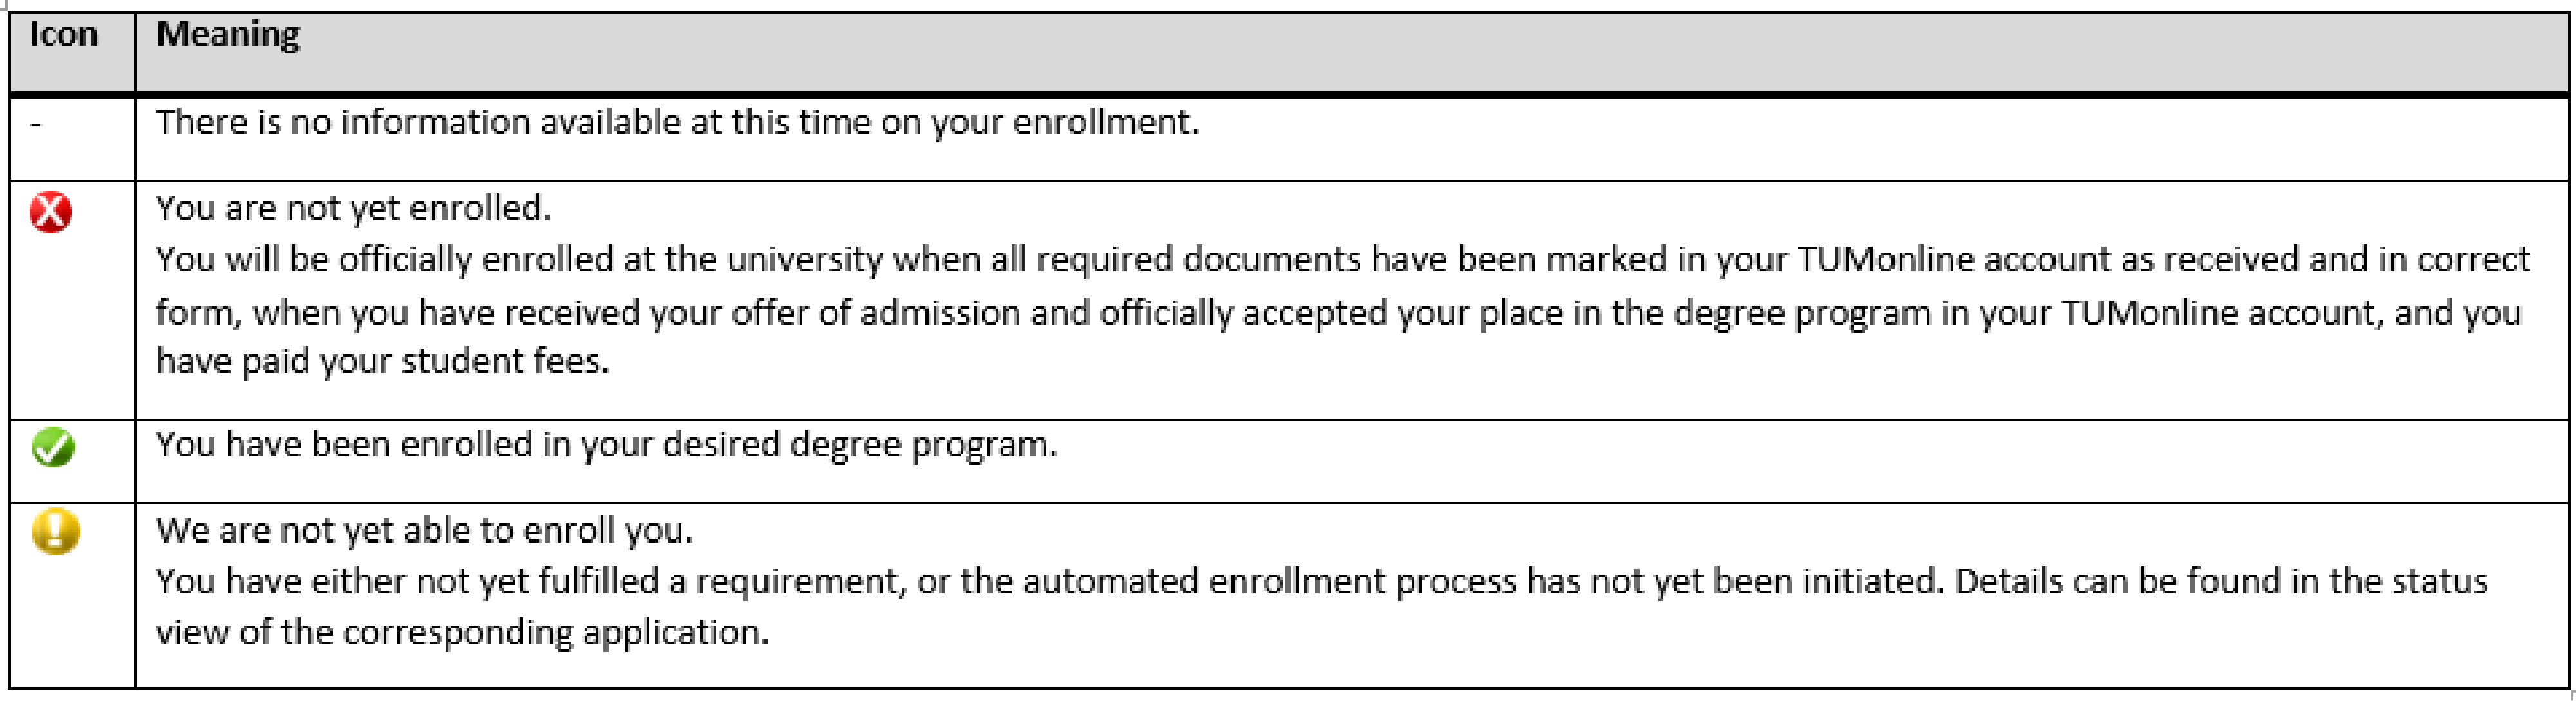 red x: you are not enrolled. green hook: you are enrolled. yellow exclamation mark: you cannot be enrolled yet, please check the details of the application